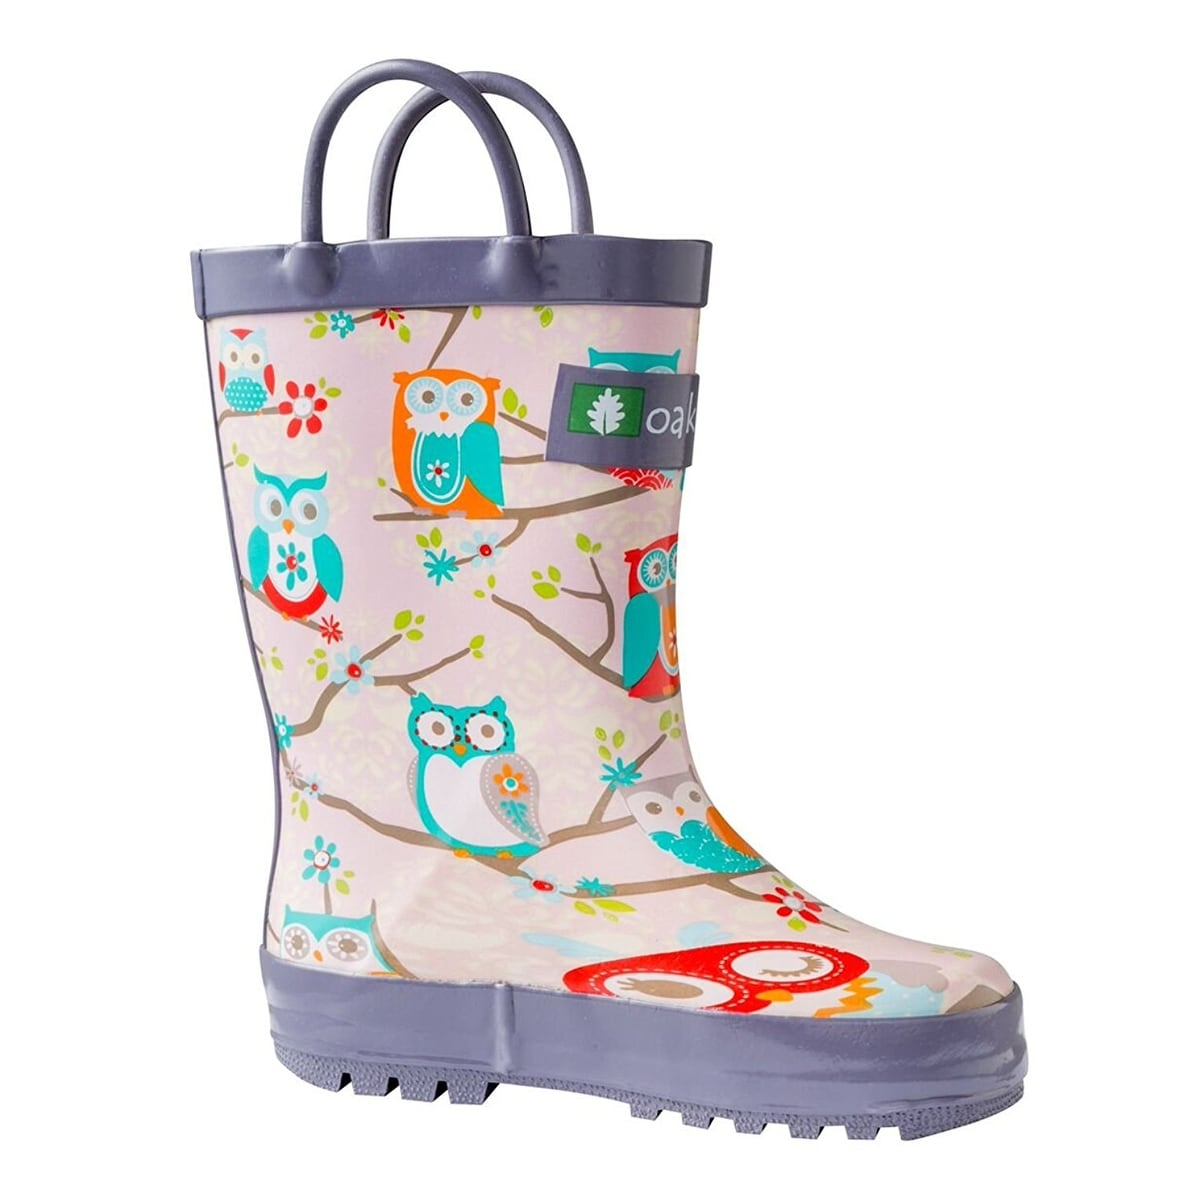 a3acb963b42a9 Oakiwear Kids Waterproof Rubber Rain Boots with Easy-On Handles - 5t us  toddler